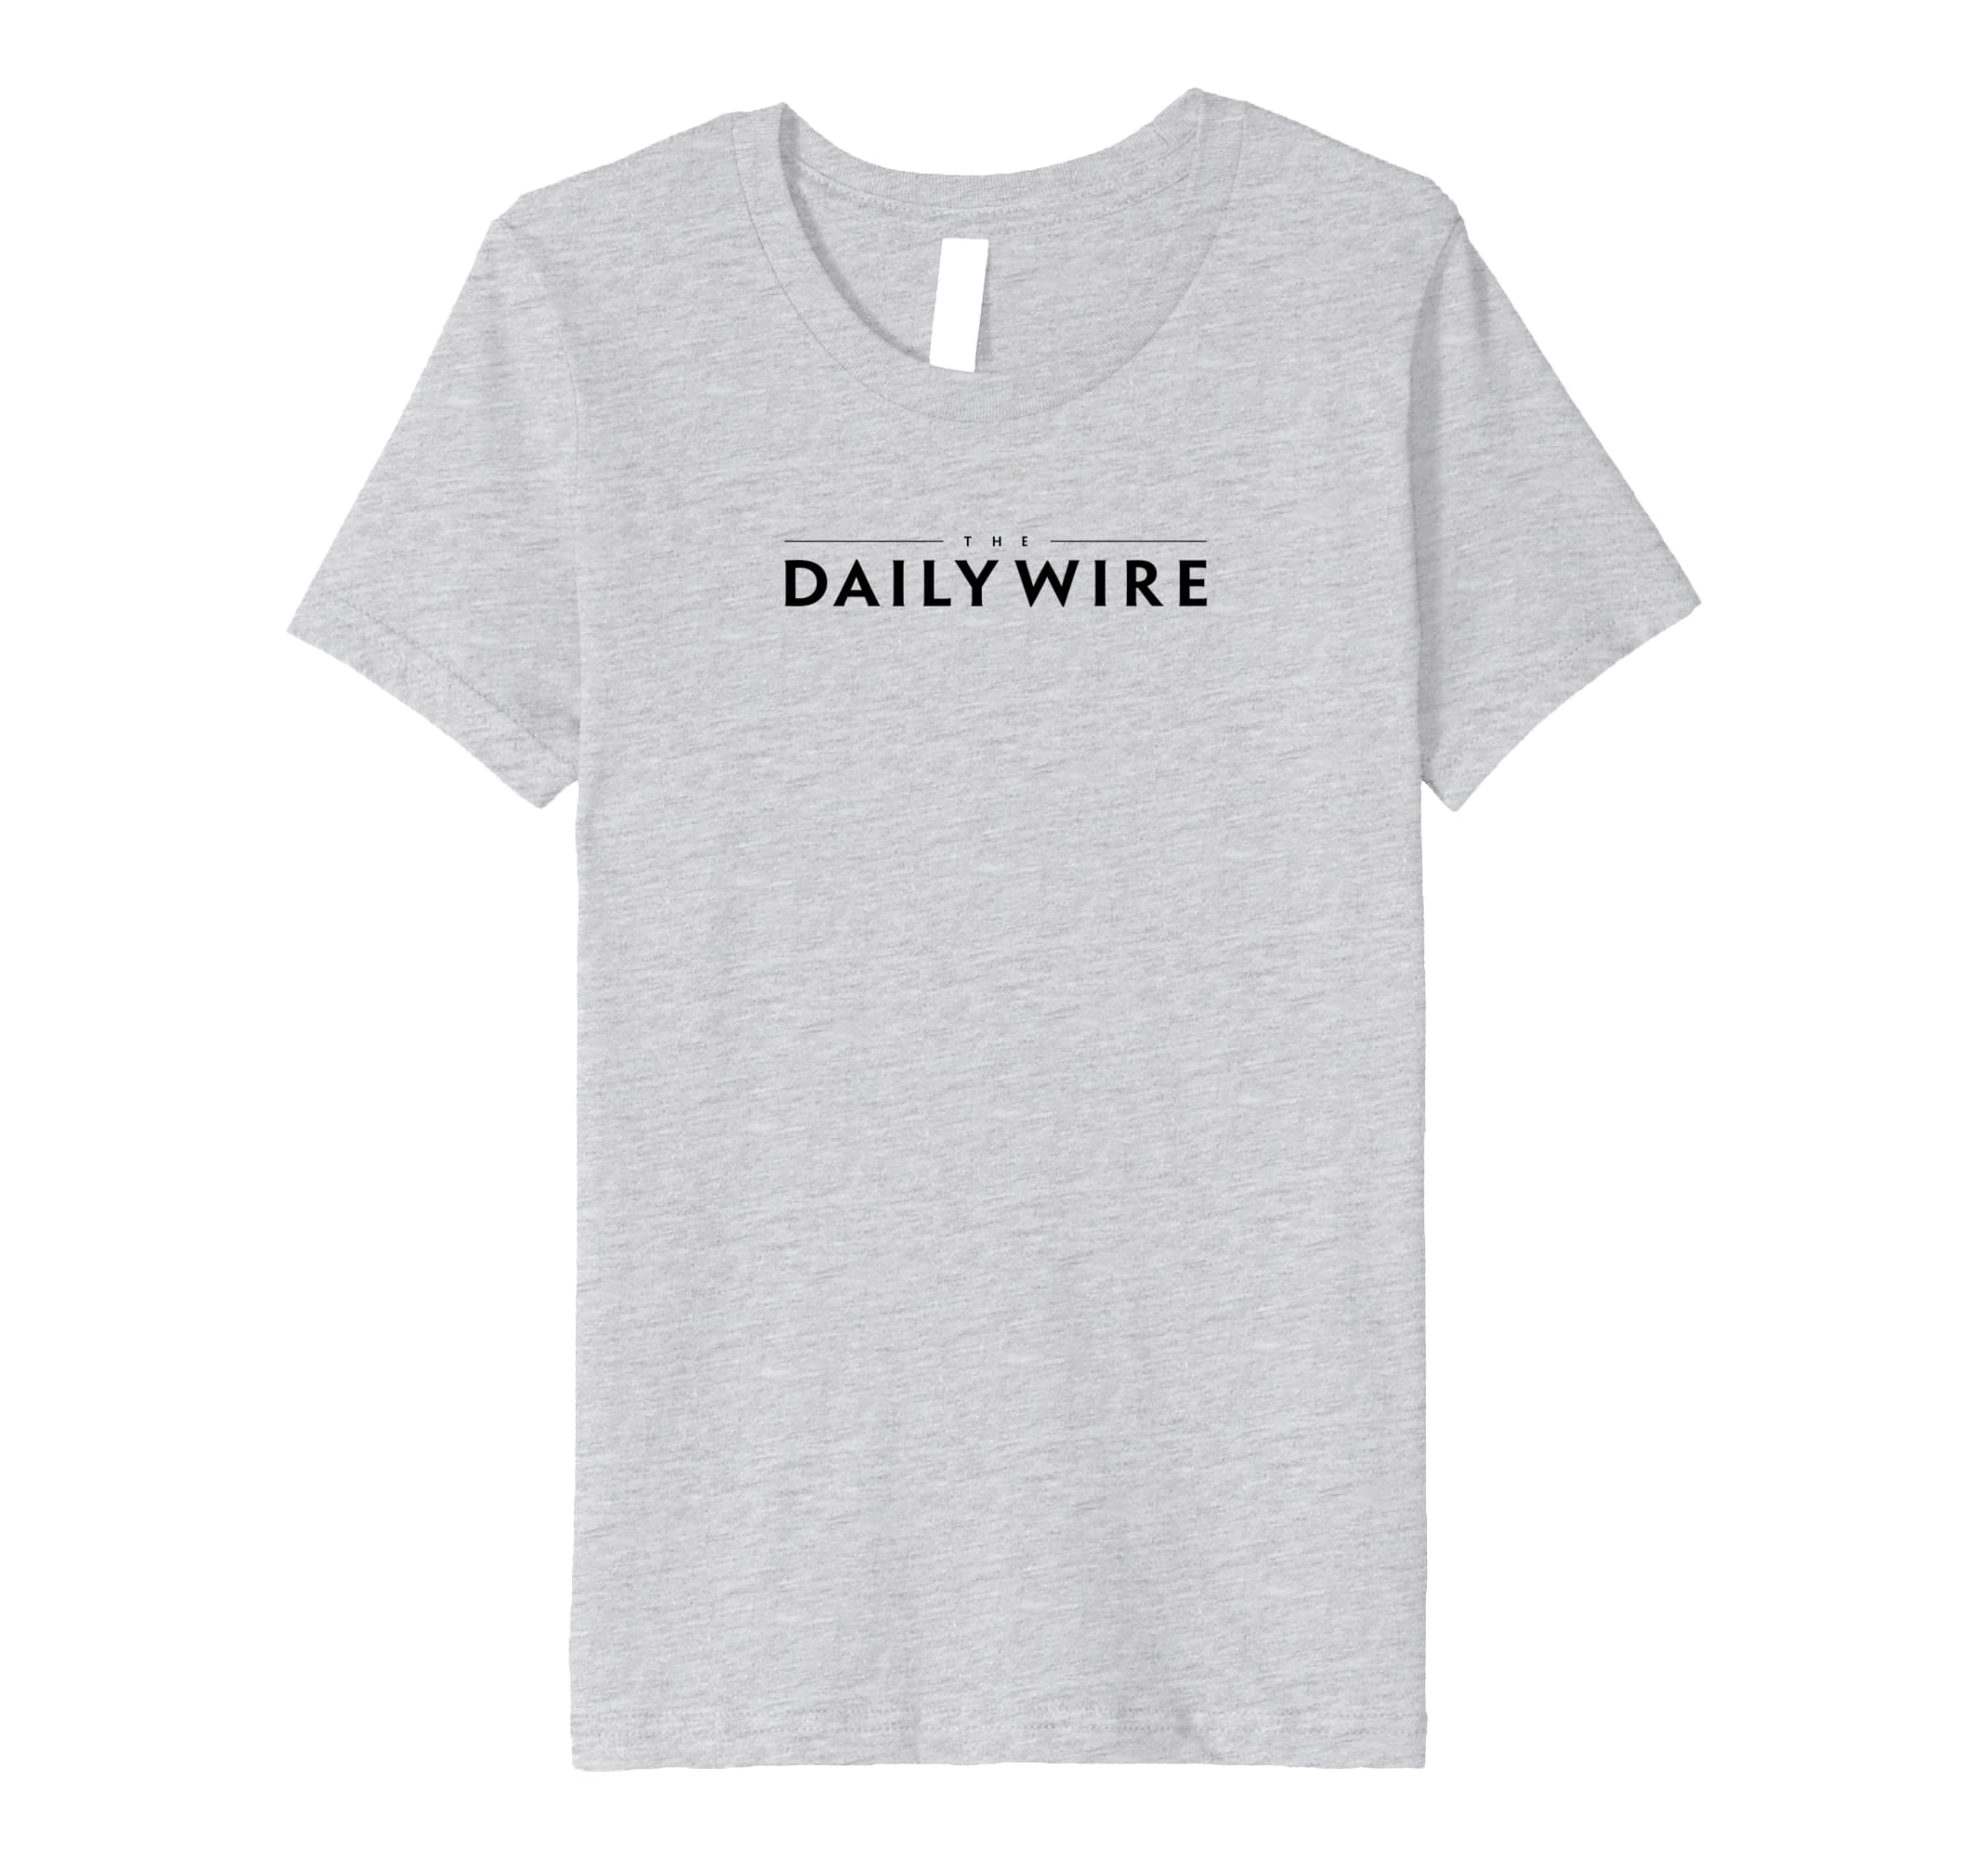 Amazon.com: The Daily Wire Logo T-shirt: Clothing